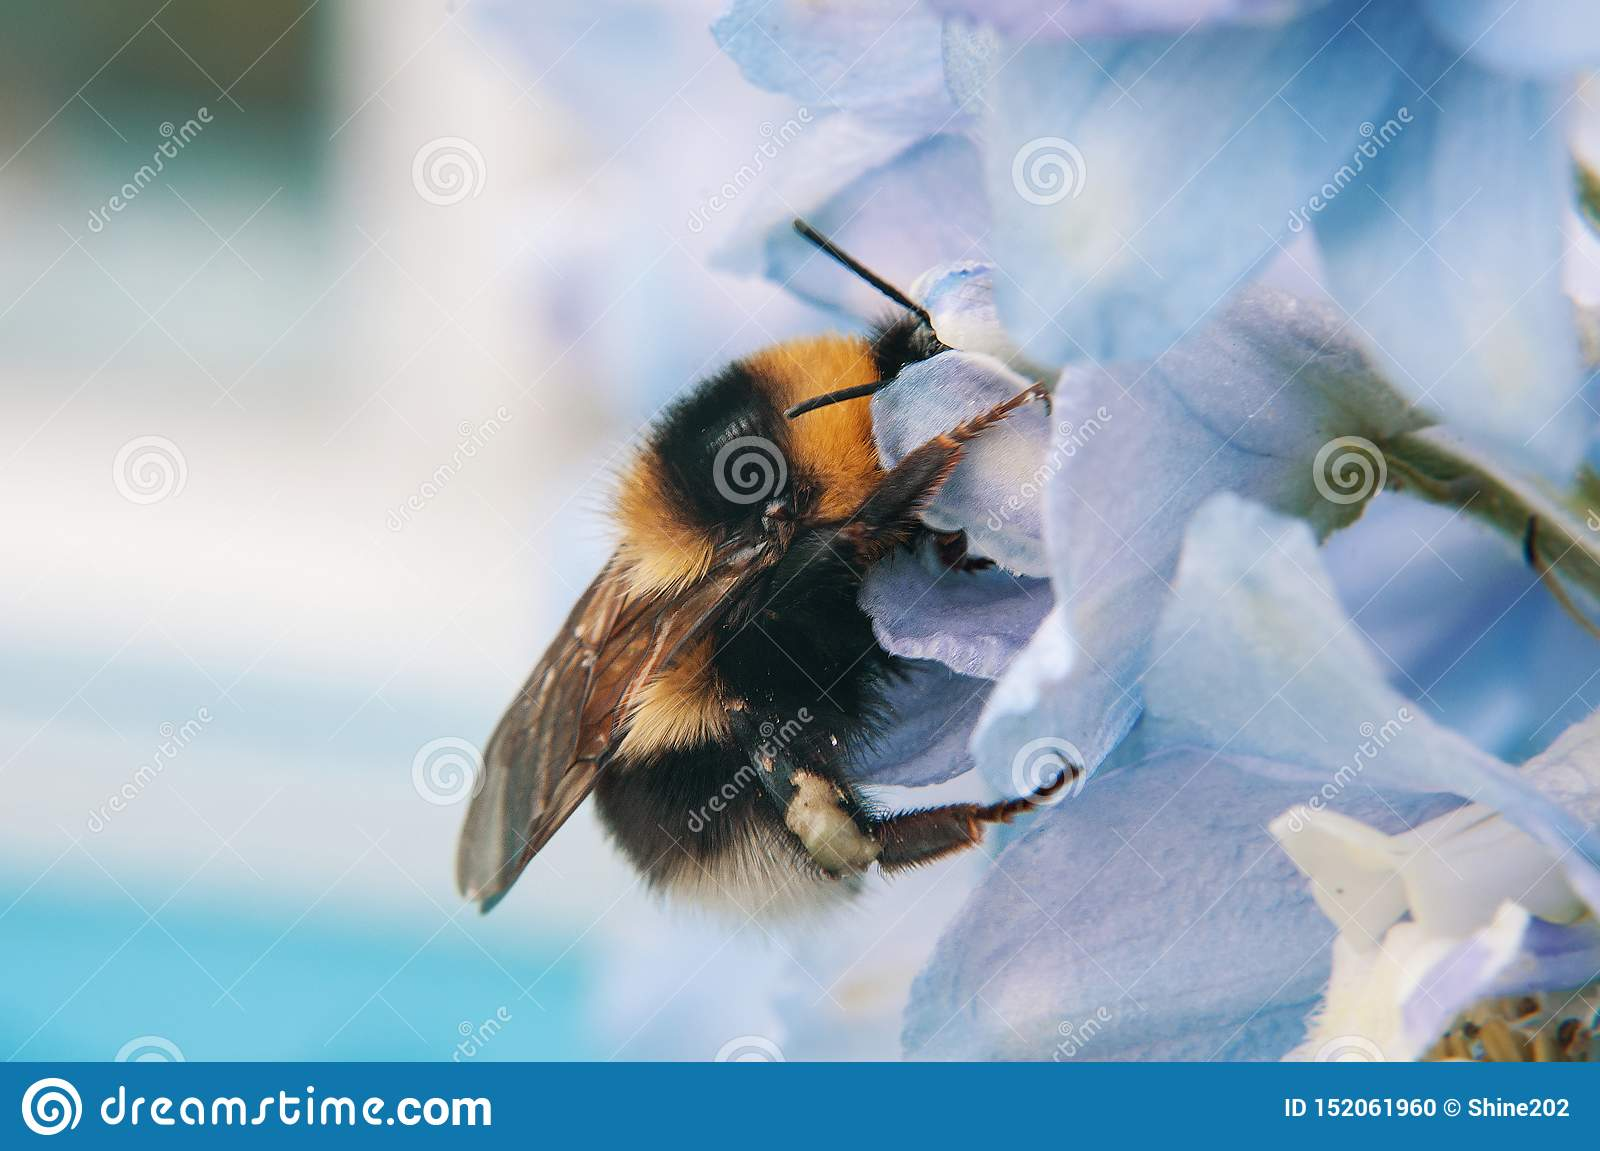 A large furry bumblebee closeup, which drinks the nectar of the blue flower bell